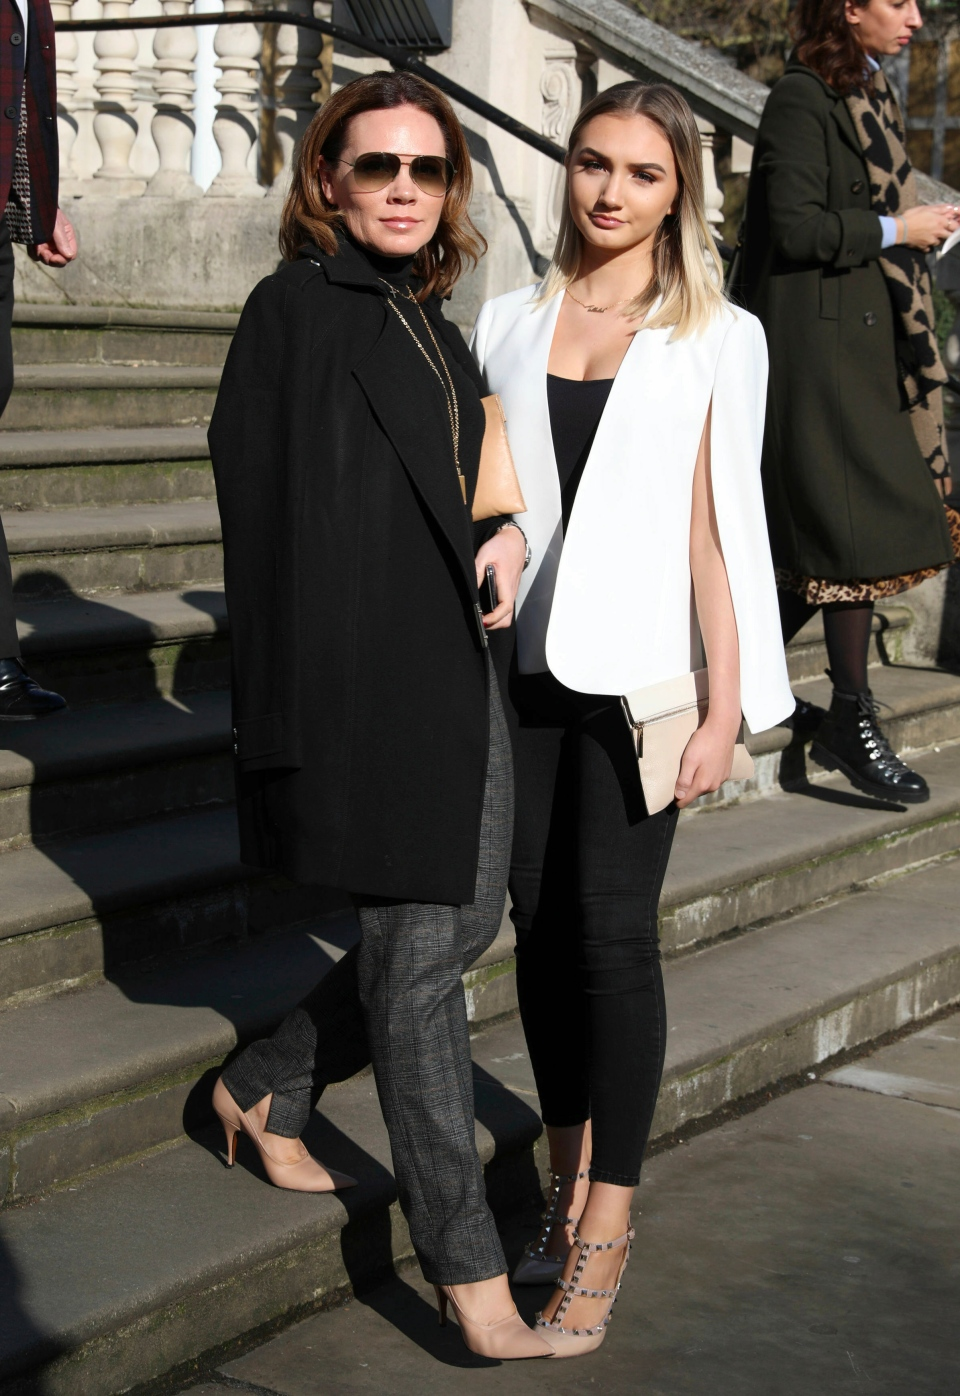 Victoria Beckham's sister Louise Adams, left, poses outside the venue for the Victoria Beckham Autumn/Winter 2019 show, during the London Fashion Week at Tate Britain in London, Sunday Feb. 17, 2019. (Isabel Infantes/PA via AP)